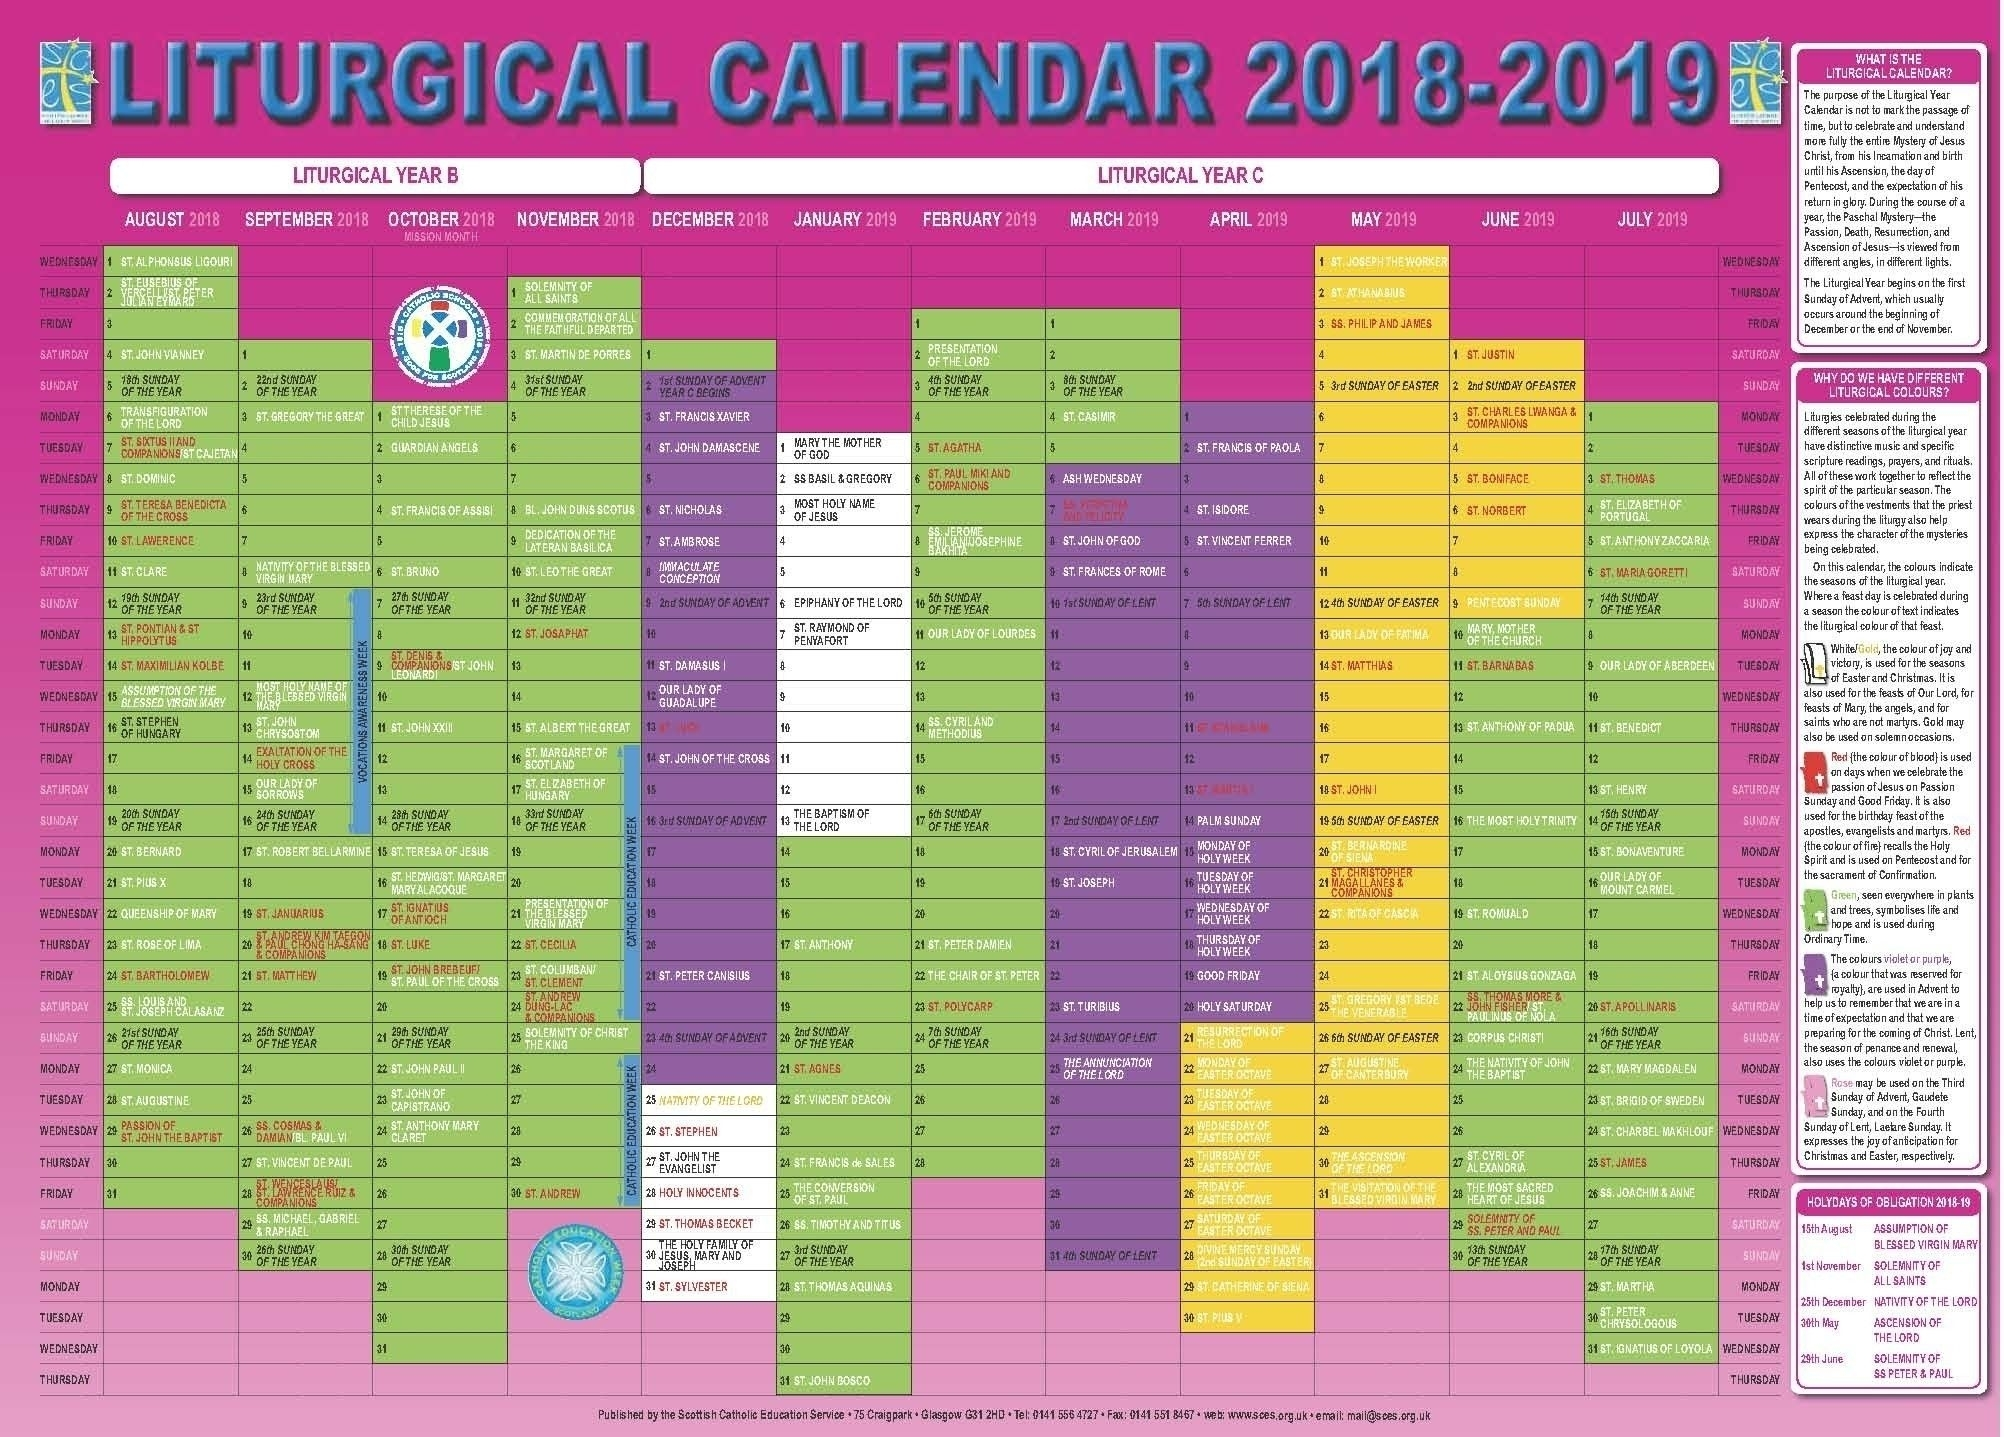 Free Printable Liturgical Calendar In 2020 | Catholic with regard to Catholic Liturgical Calendar Free Printable 2020